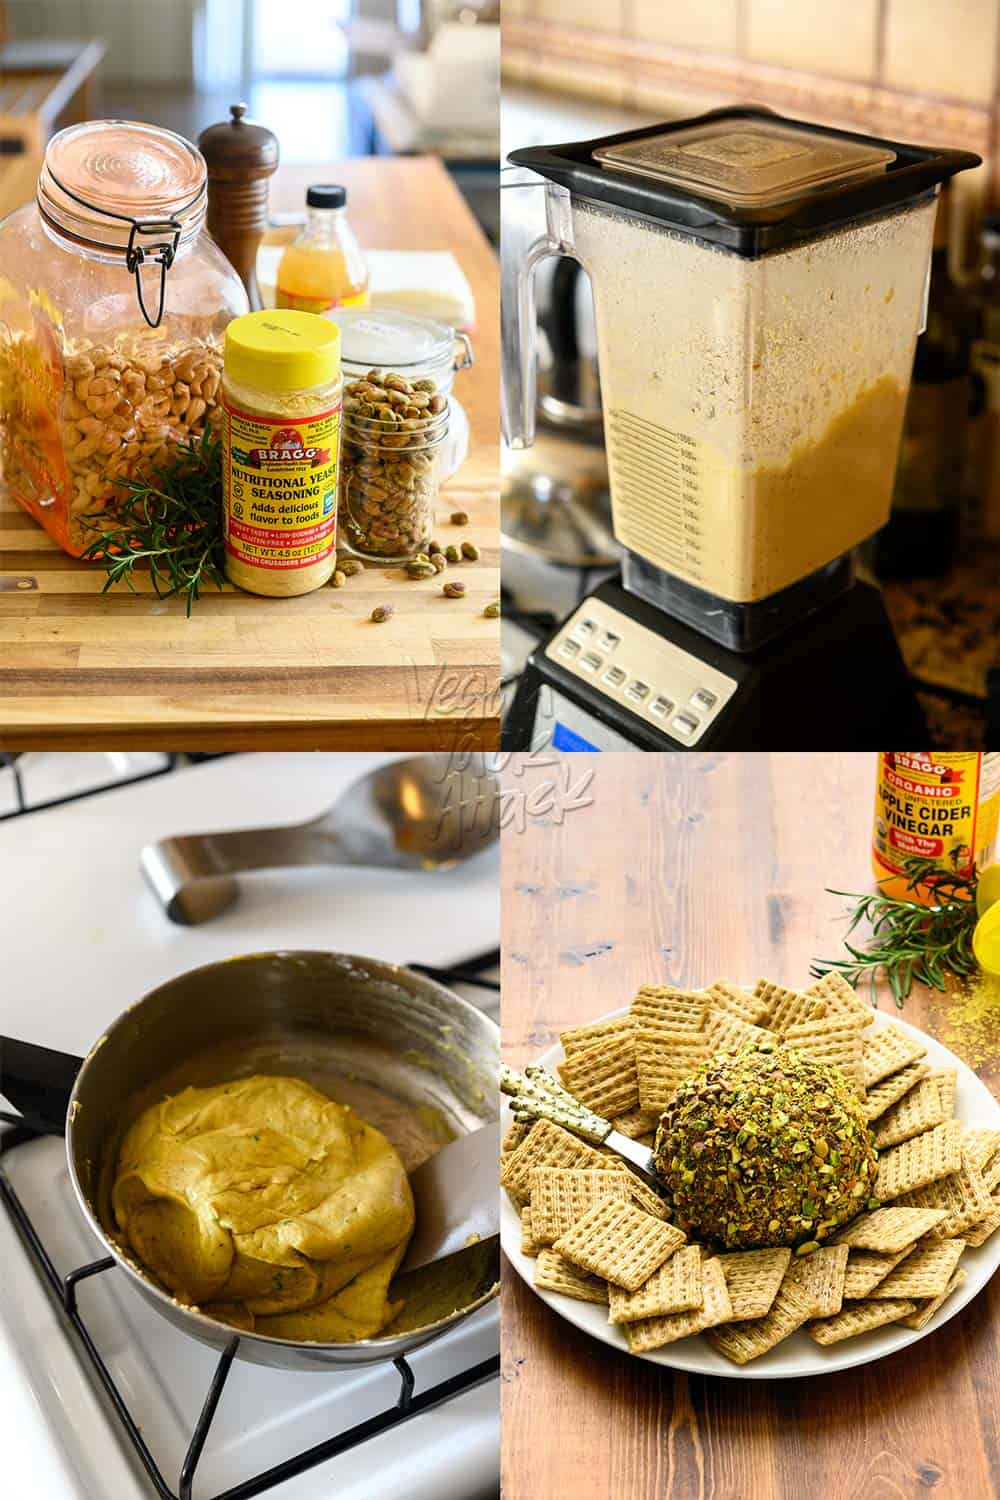 Step-by-step images of making vegan pistachio-rosemary Cheese ball. 1, ingredients, 2, blending, 3, heating in pan, 4, final dish on plate